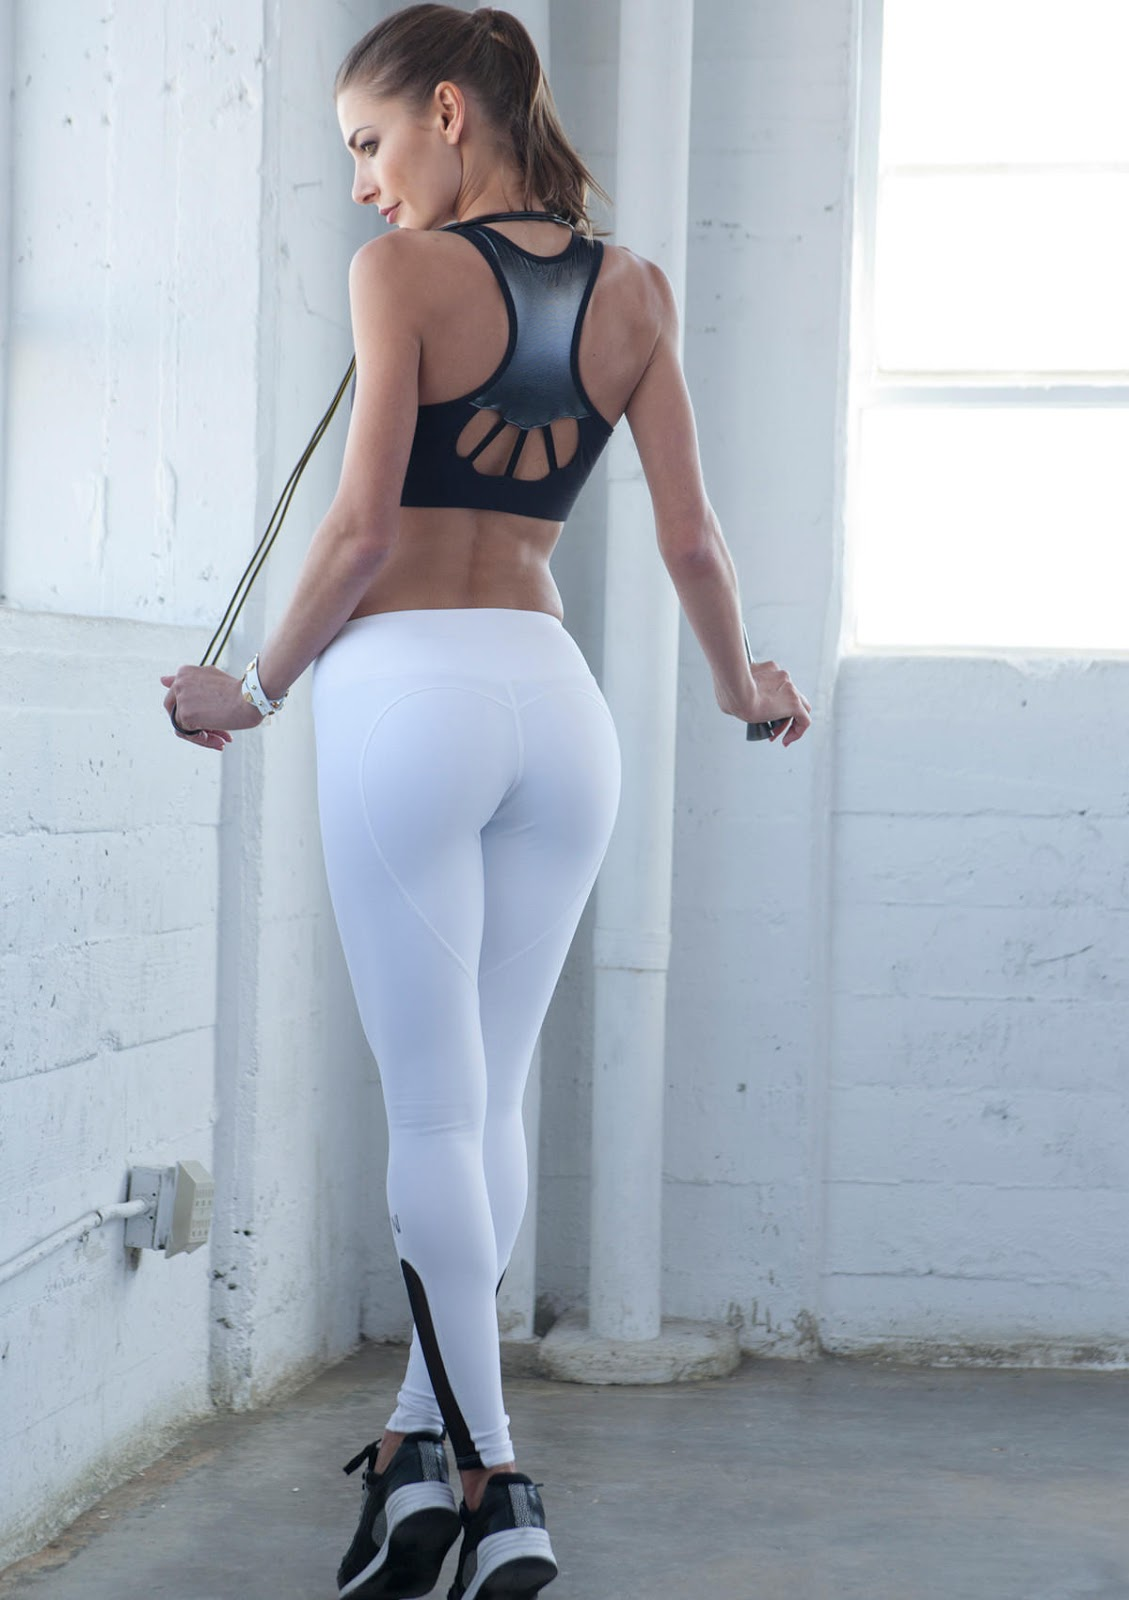 girls-hot-butt-in-tight-pants